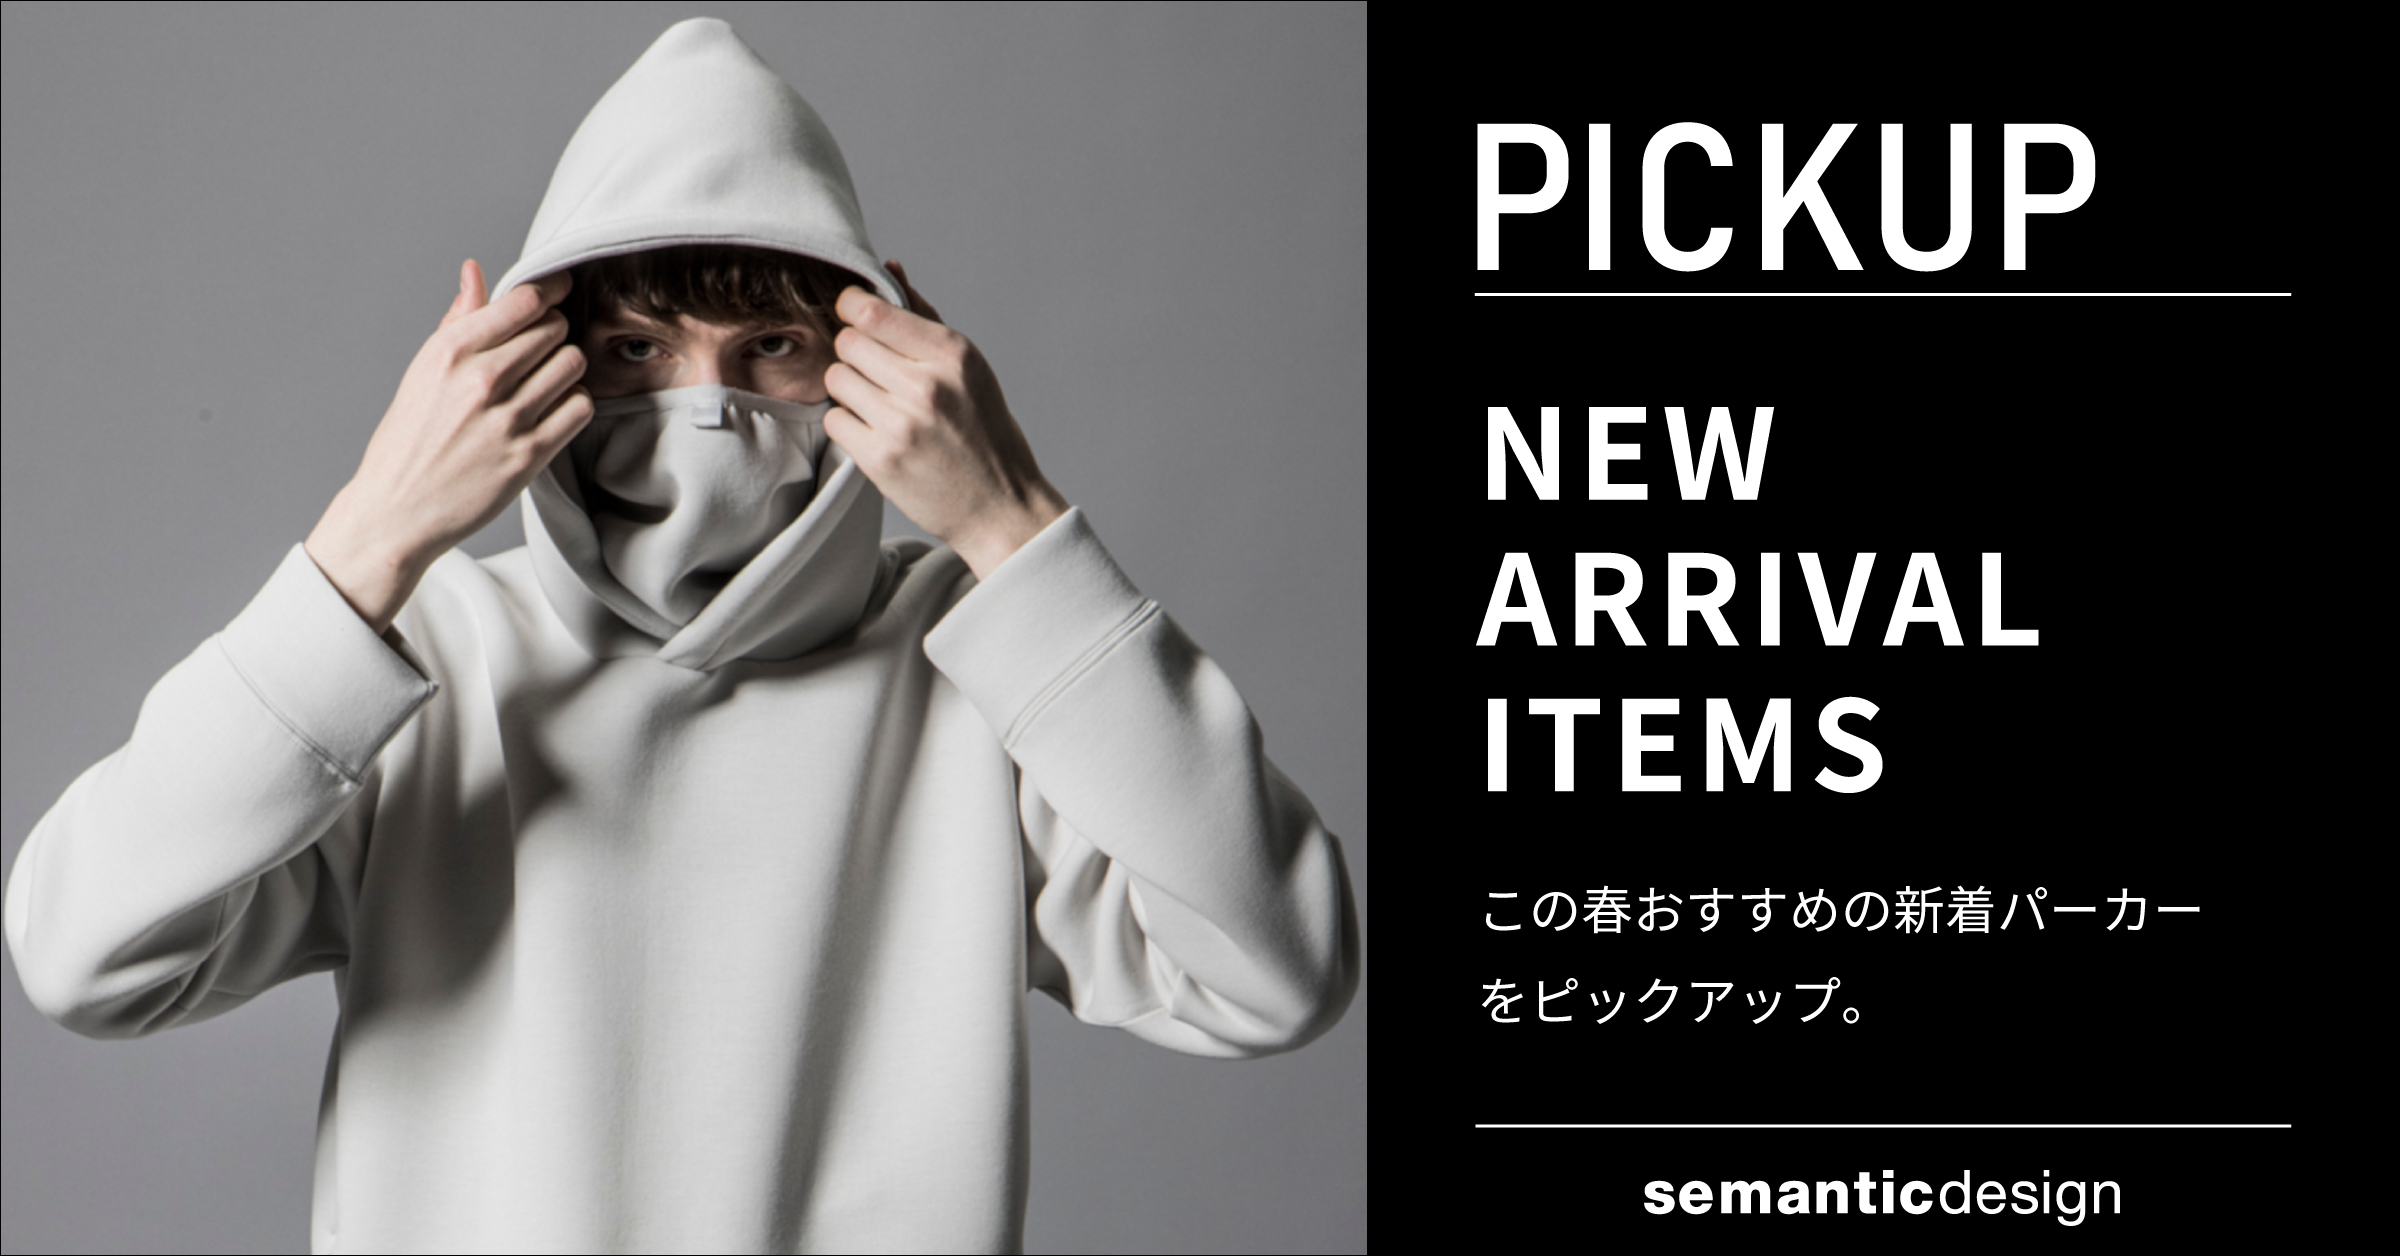 semanticdesign PICK UP NEW ARRIVAL ITEMS